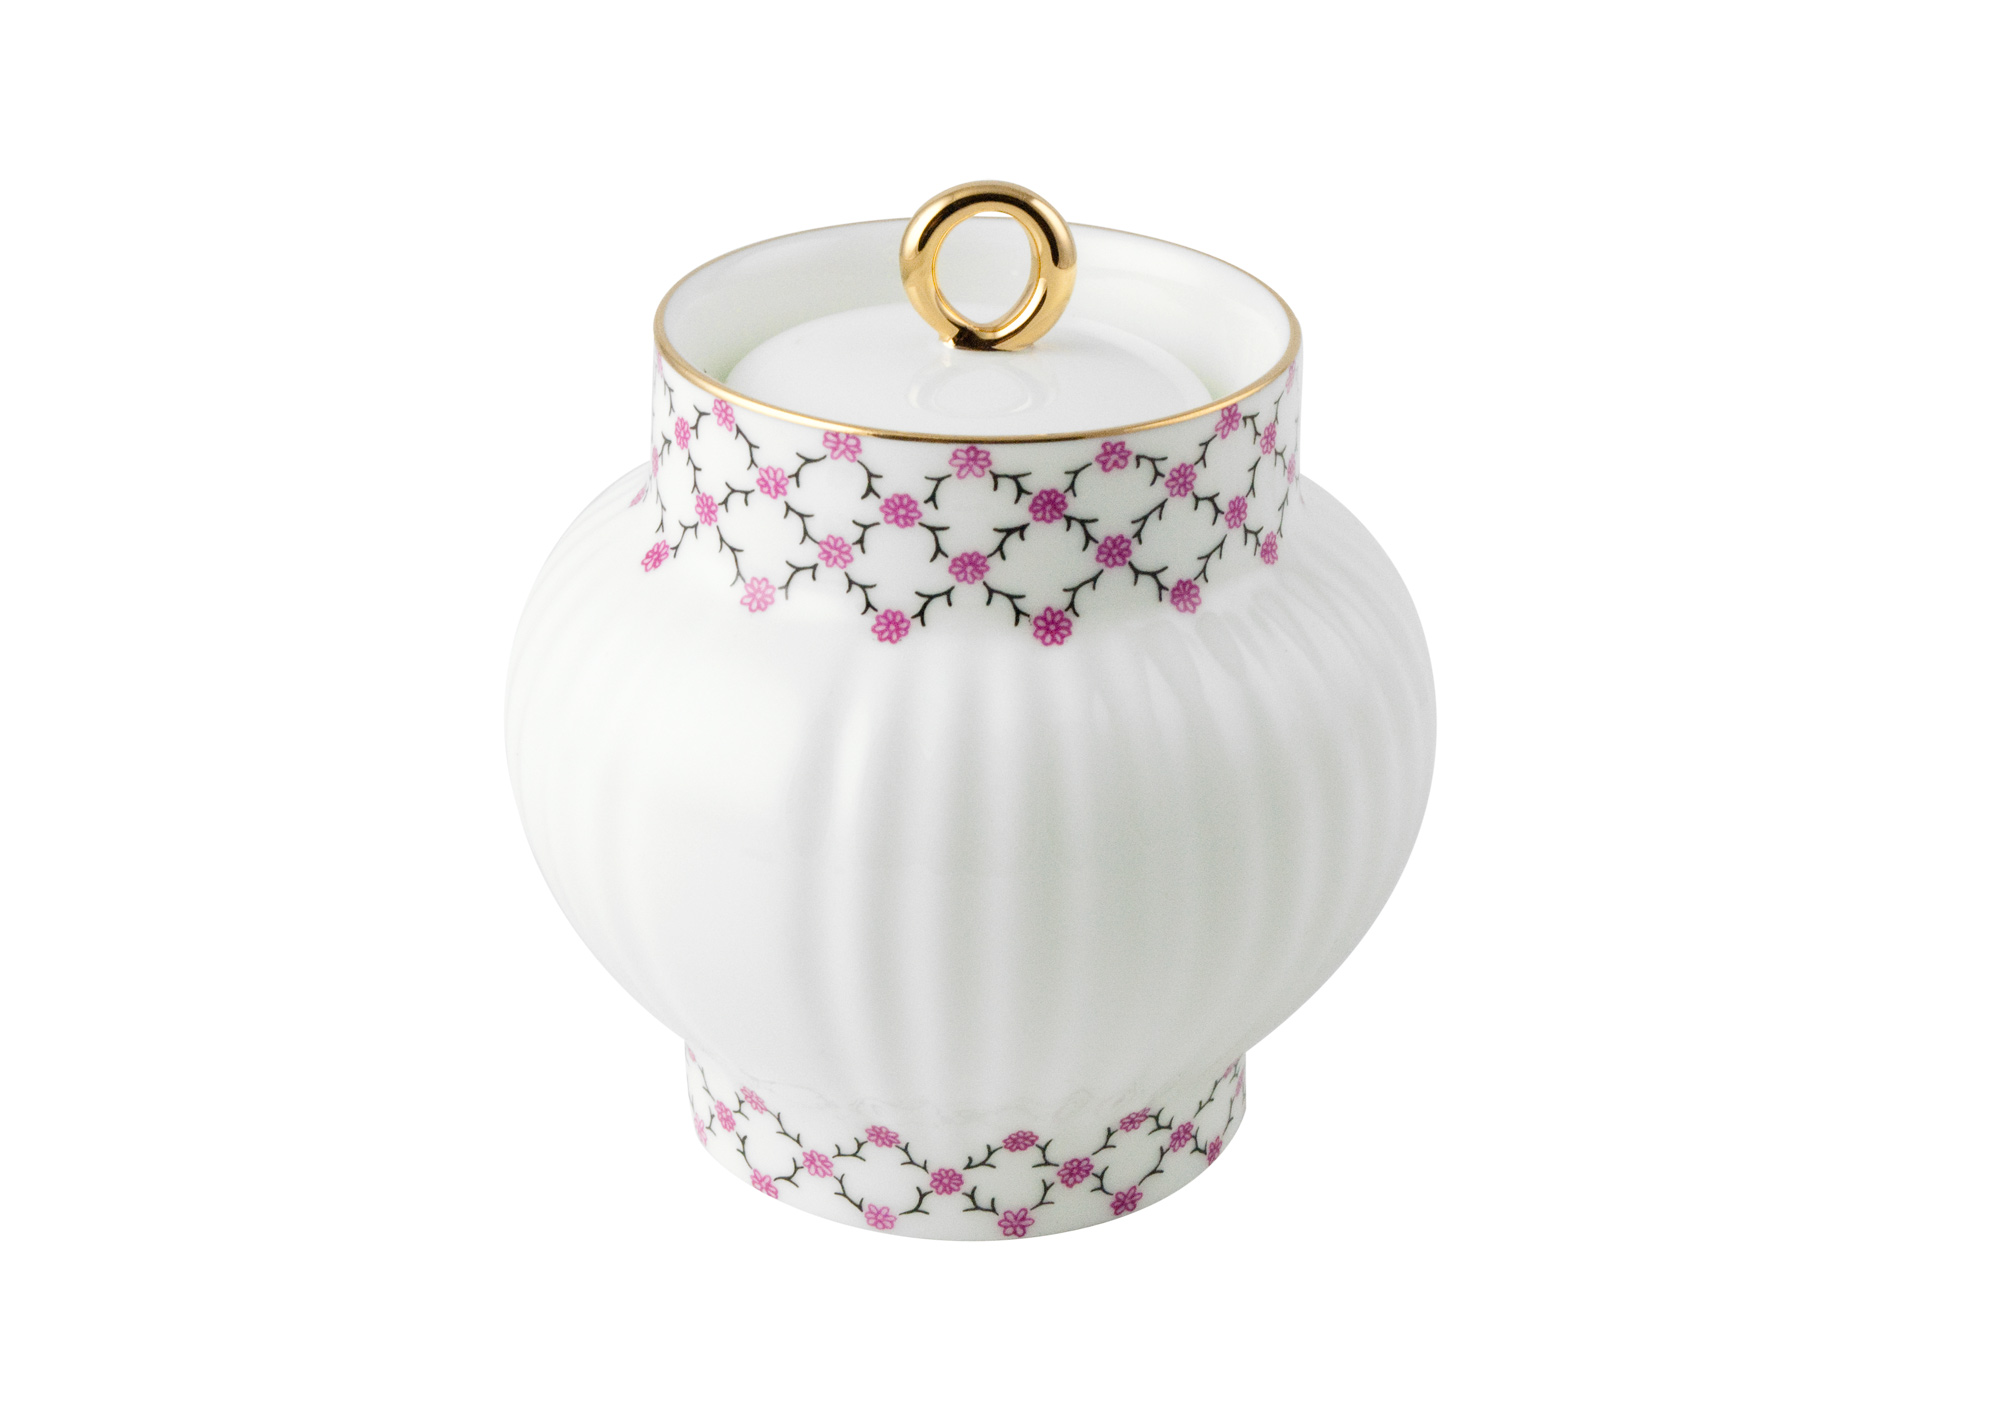 Buy Pink Net Sugar Bowl at GoldenCockerel.com